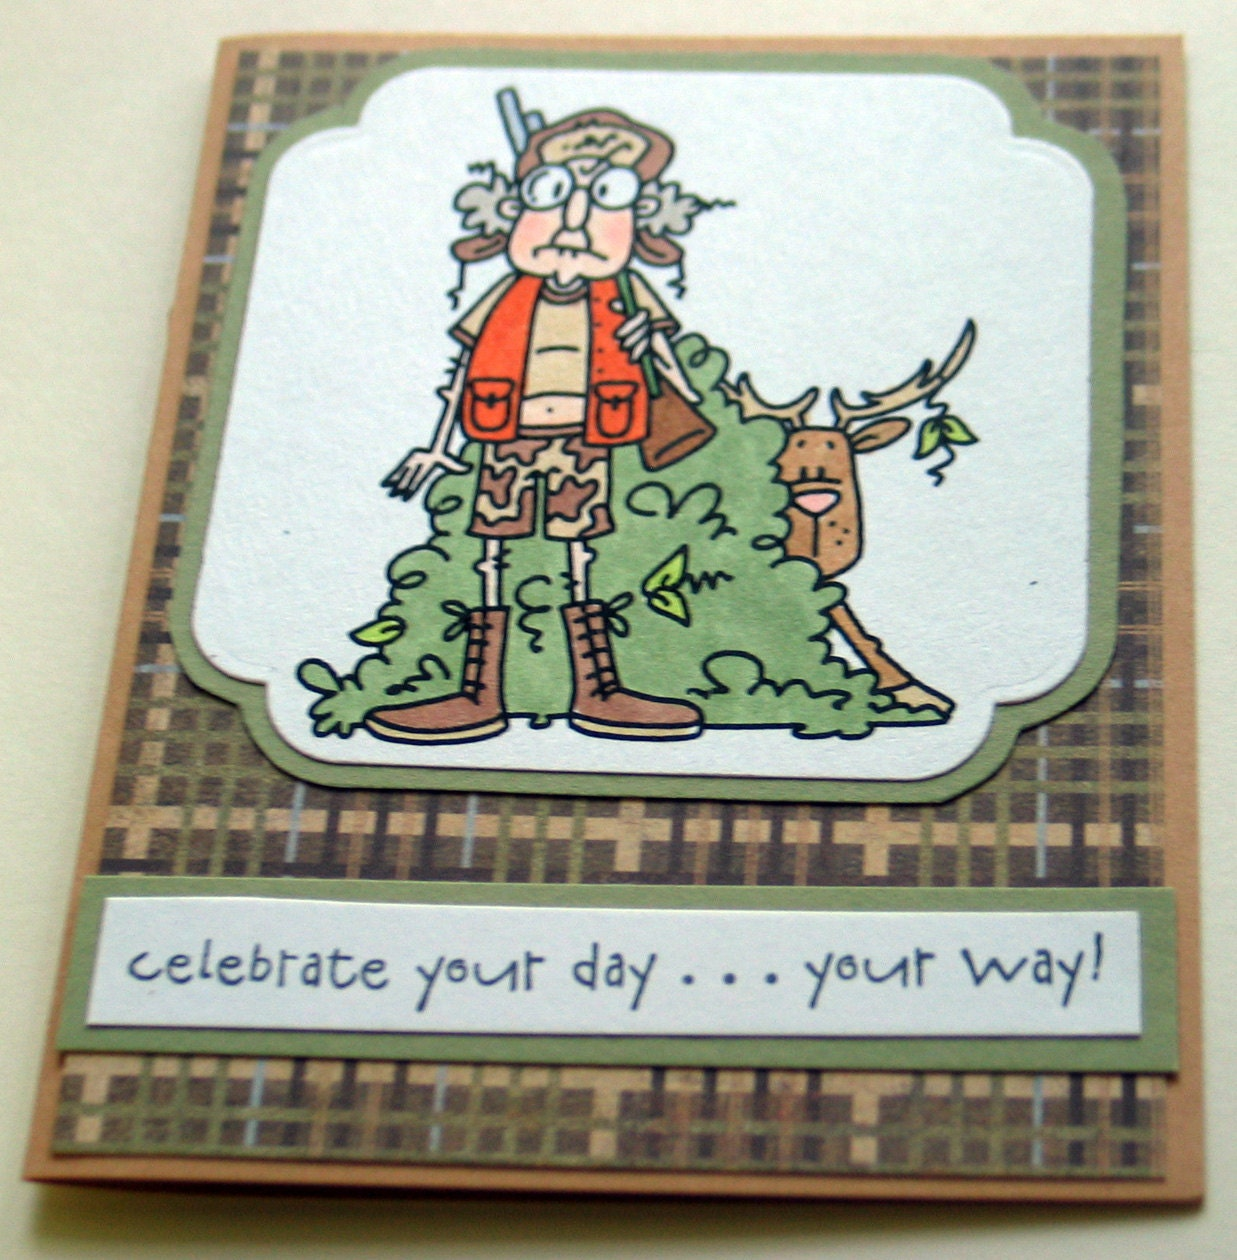 Birthday Card Humorous Hunting By Webescrapbooking On Etsy